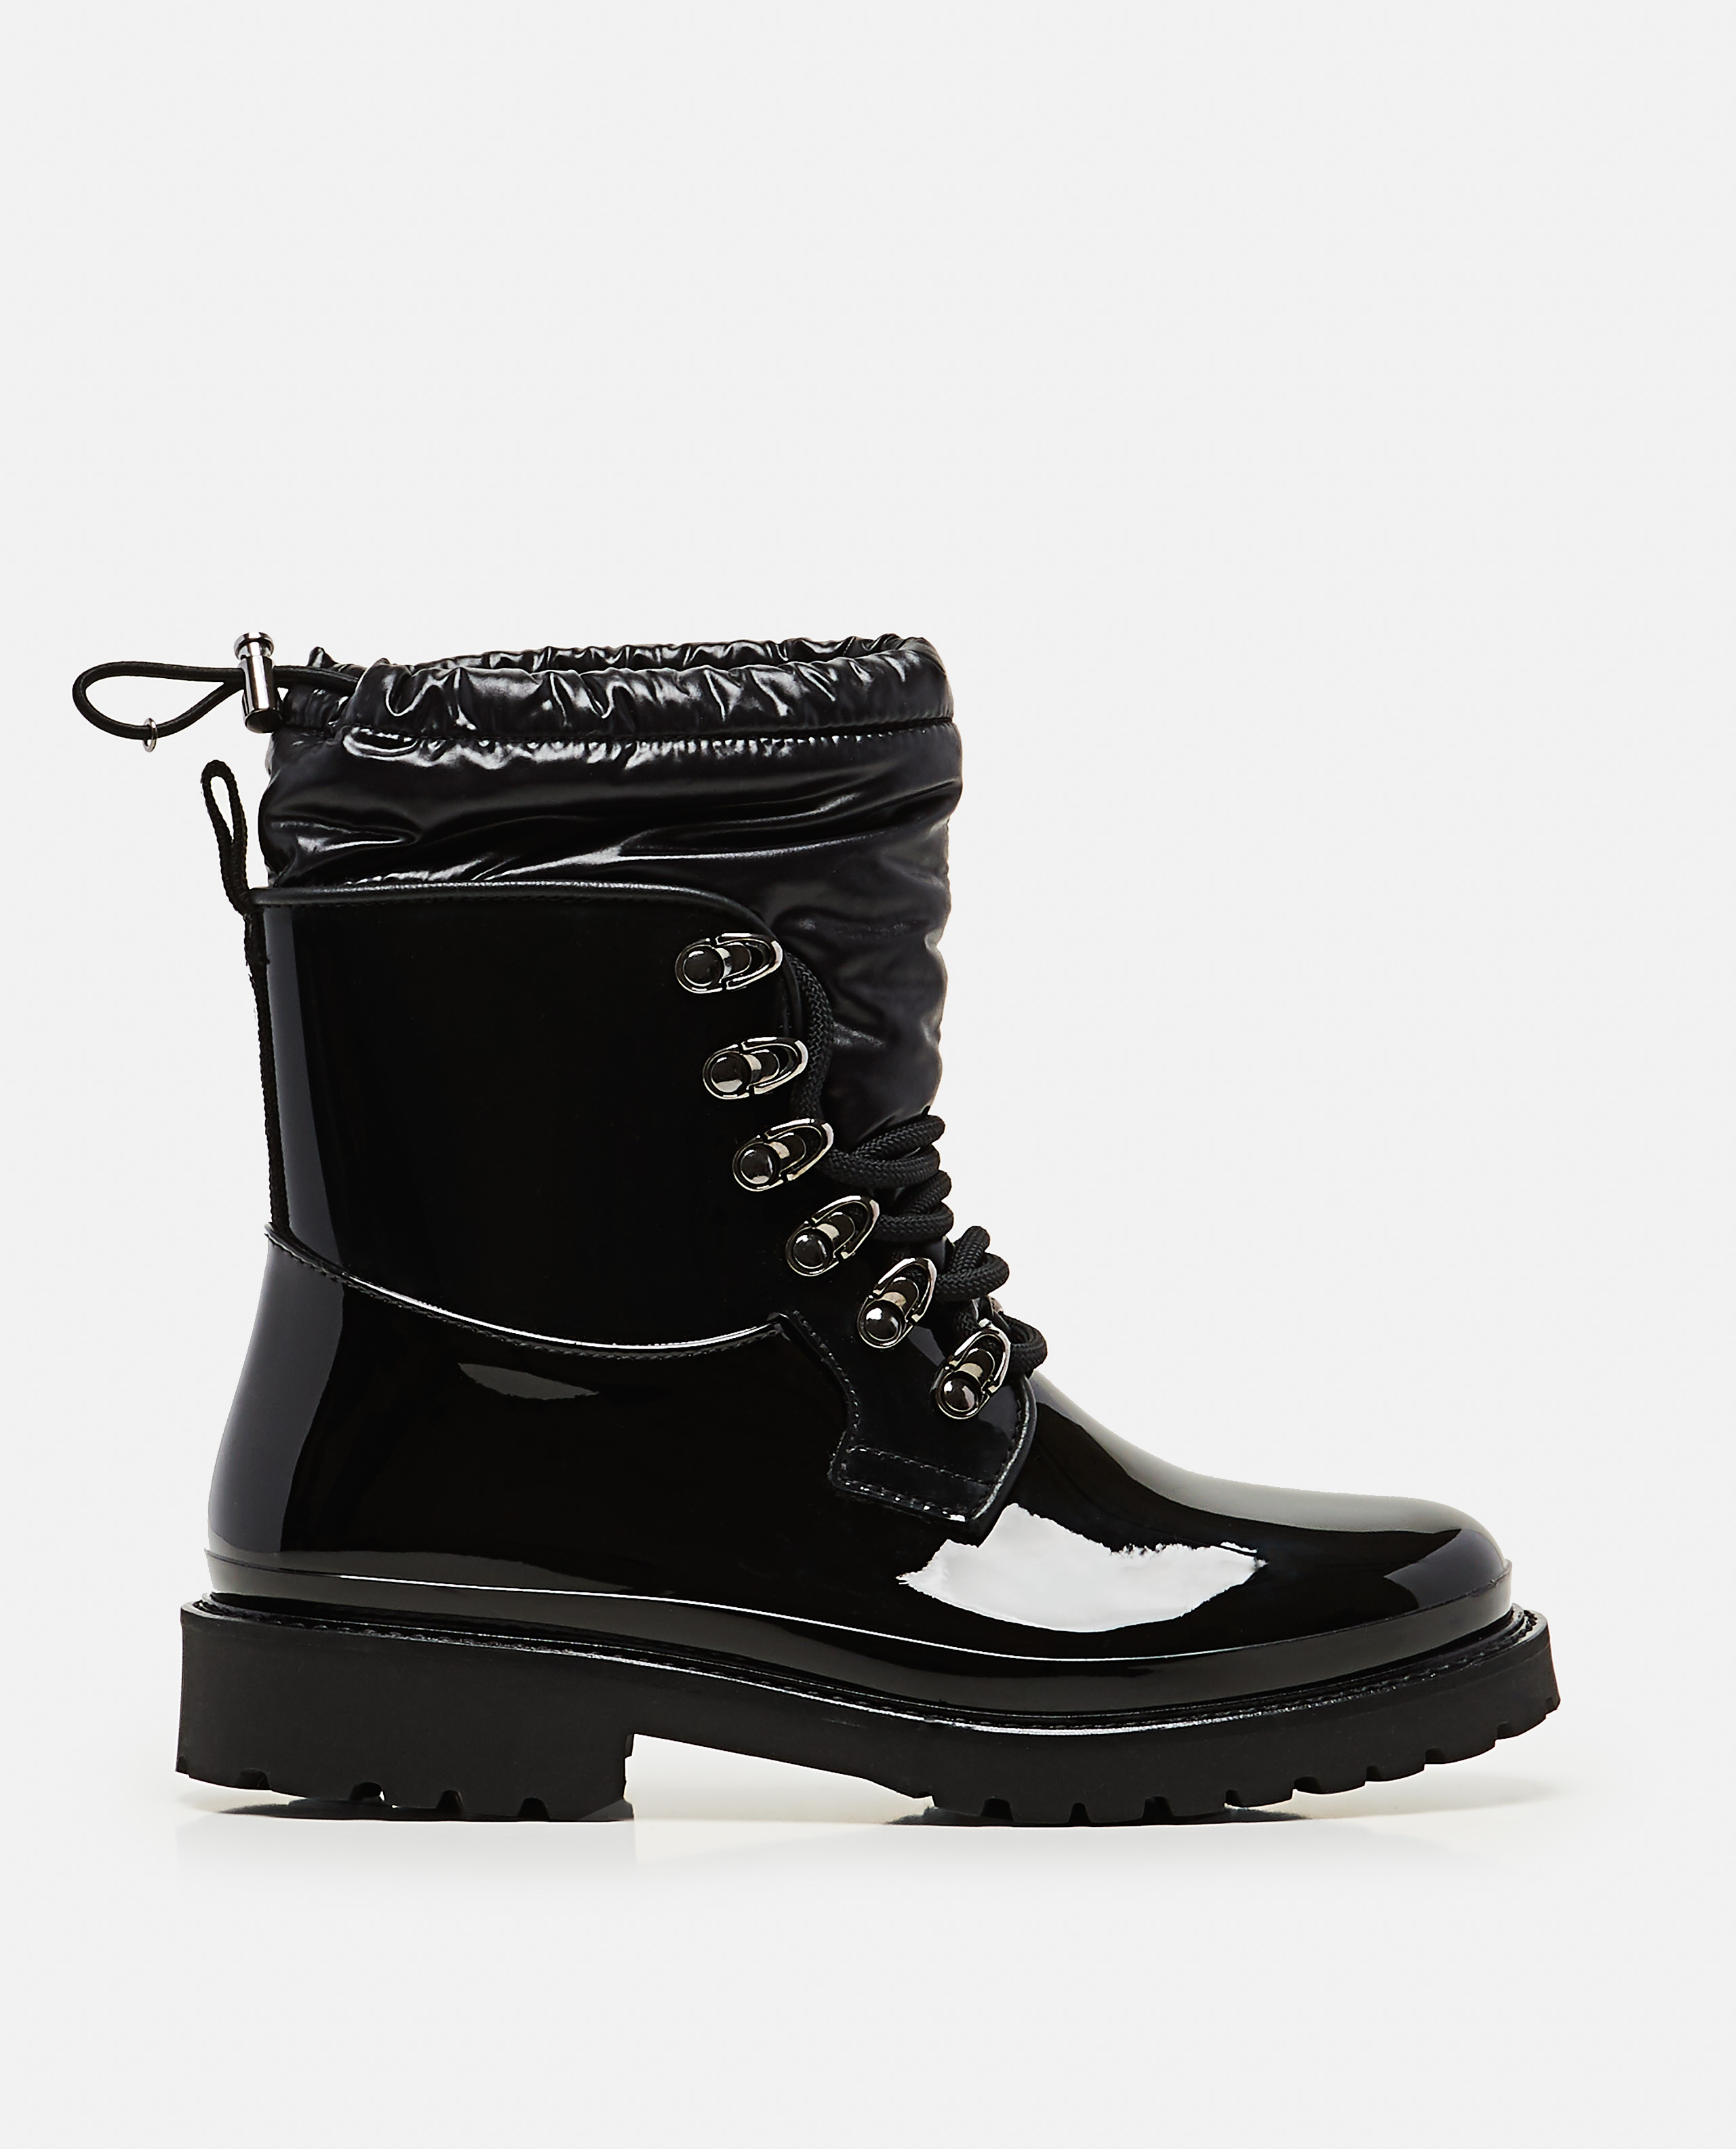 Moncler galaxite ankle boots